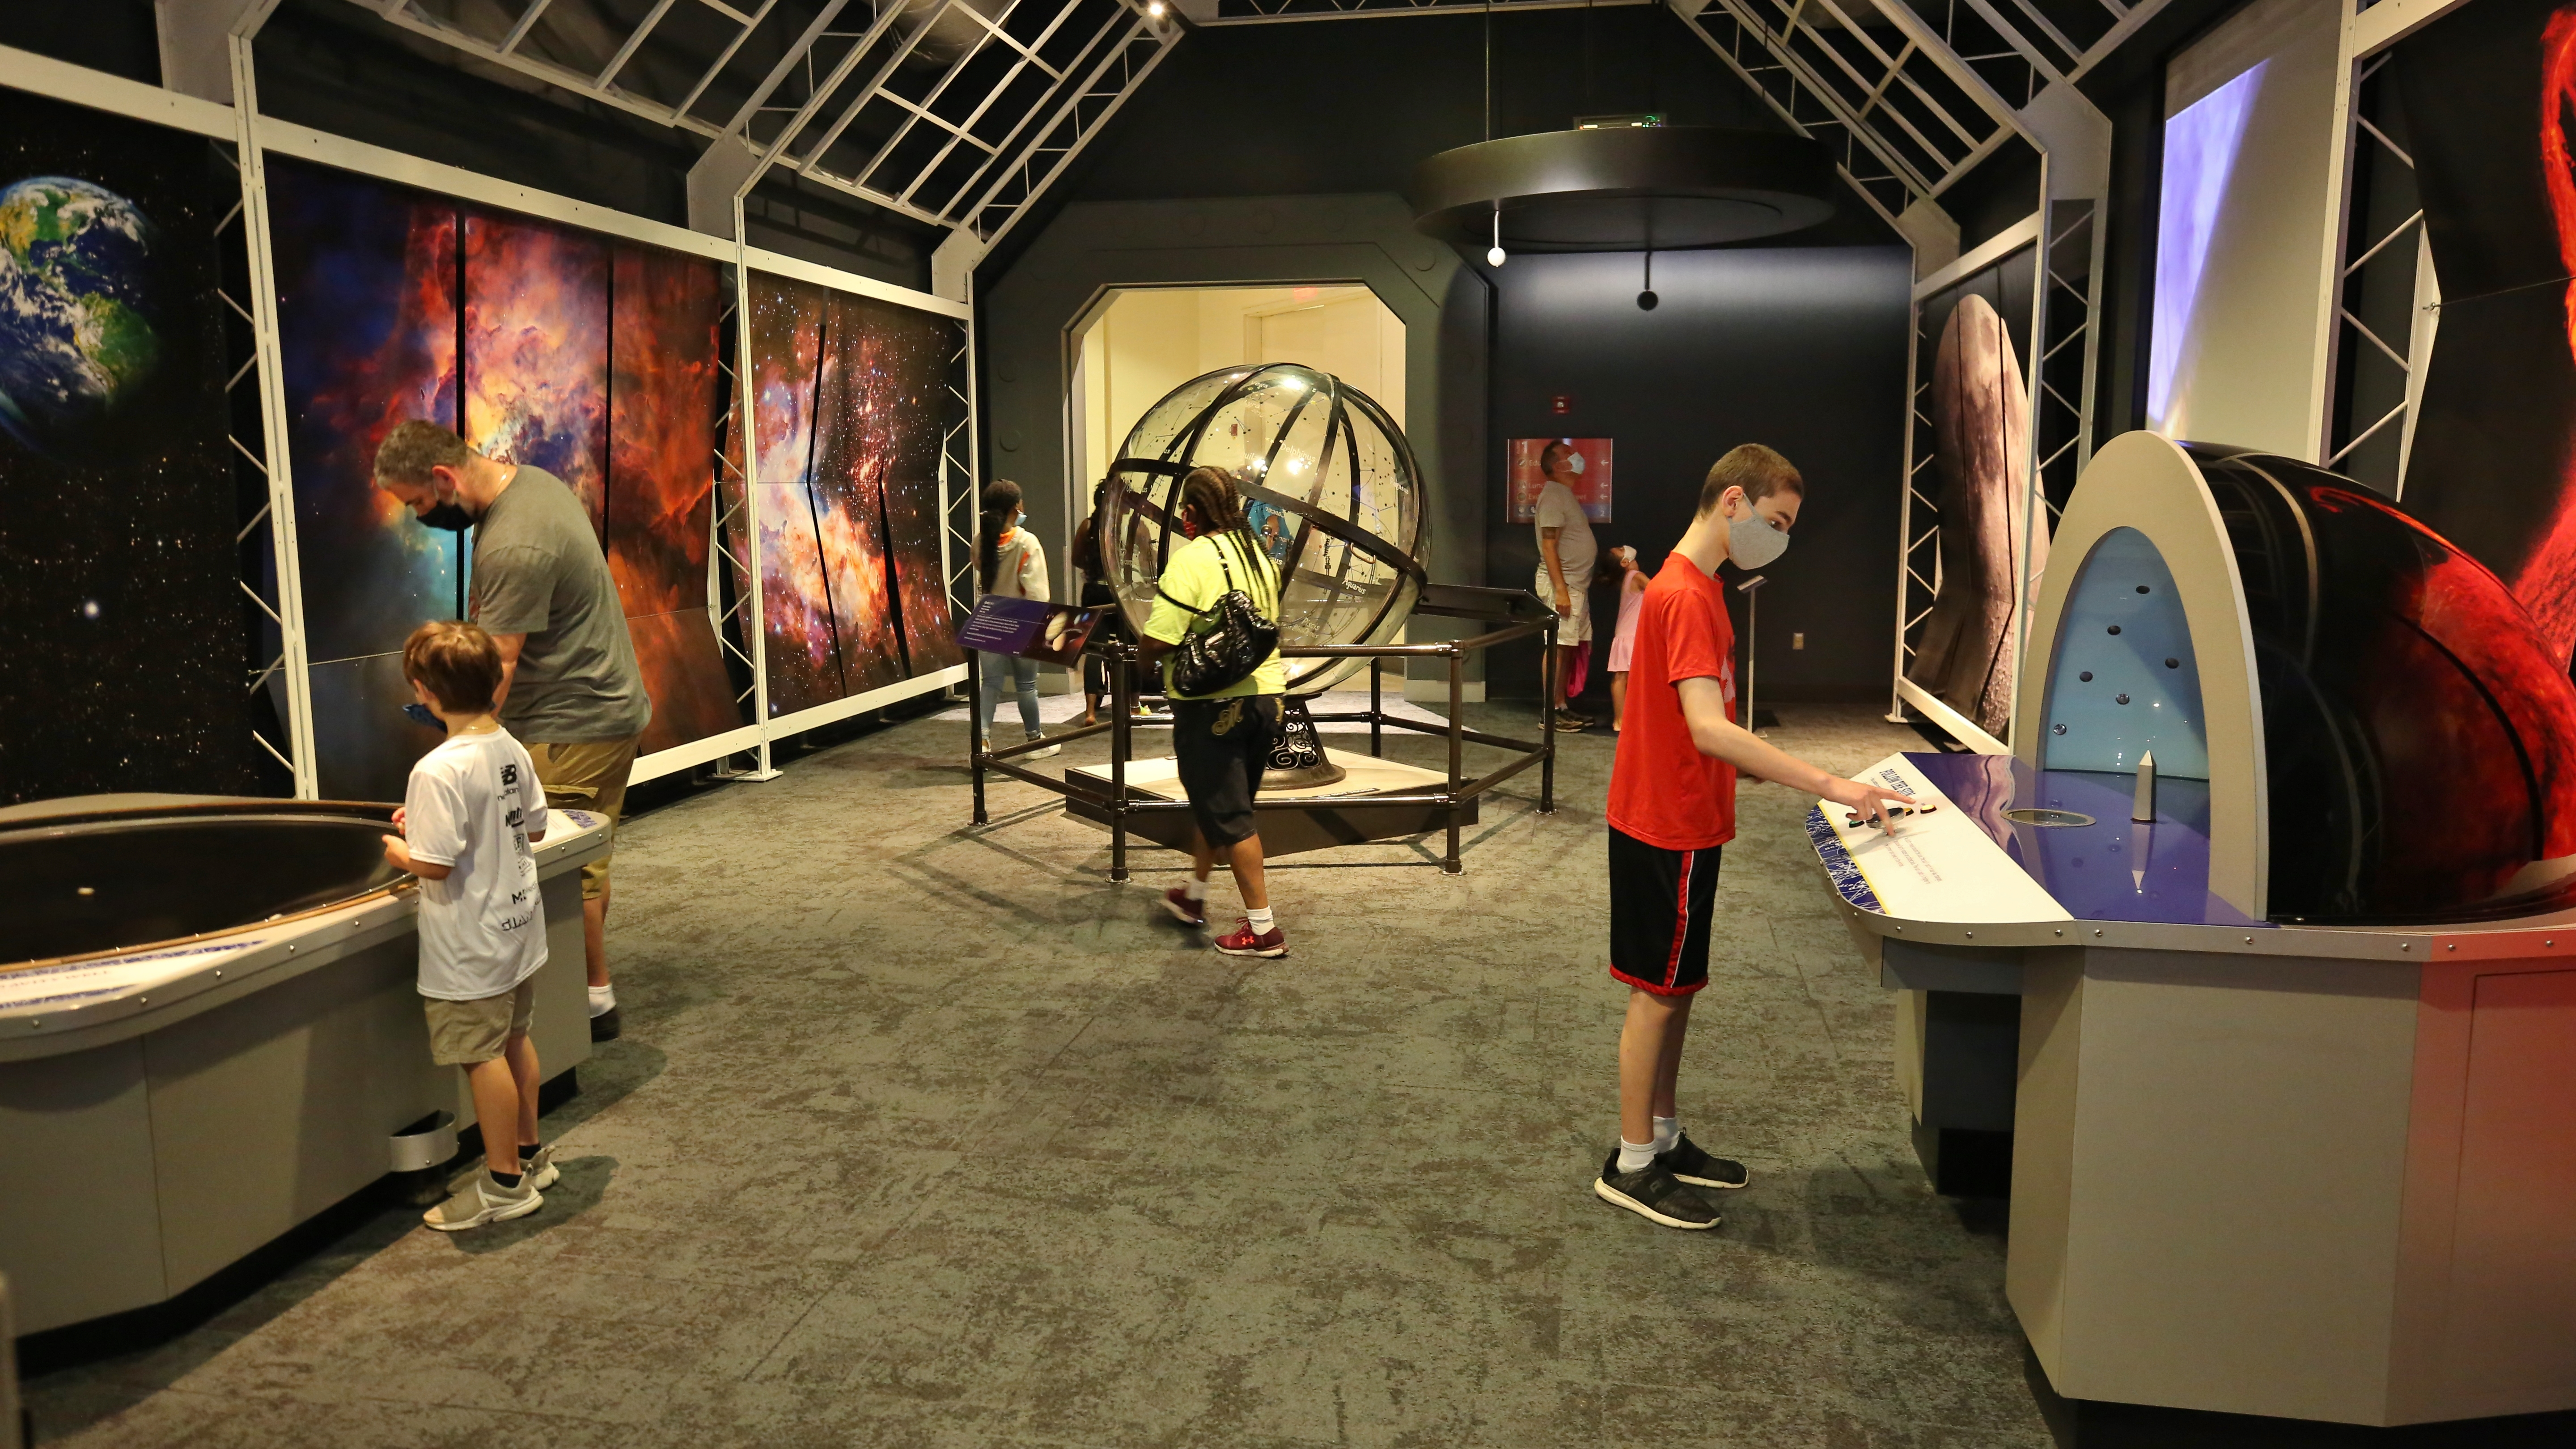 People exploring the Space Exhibit